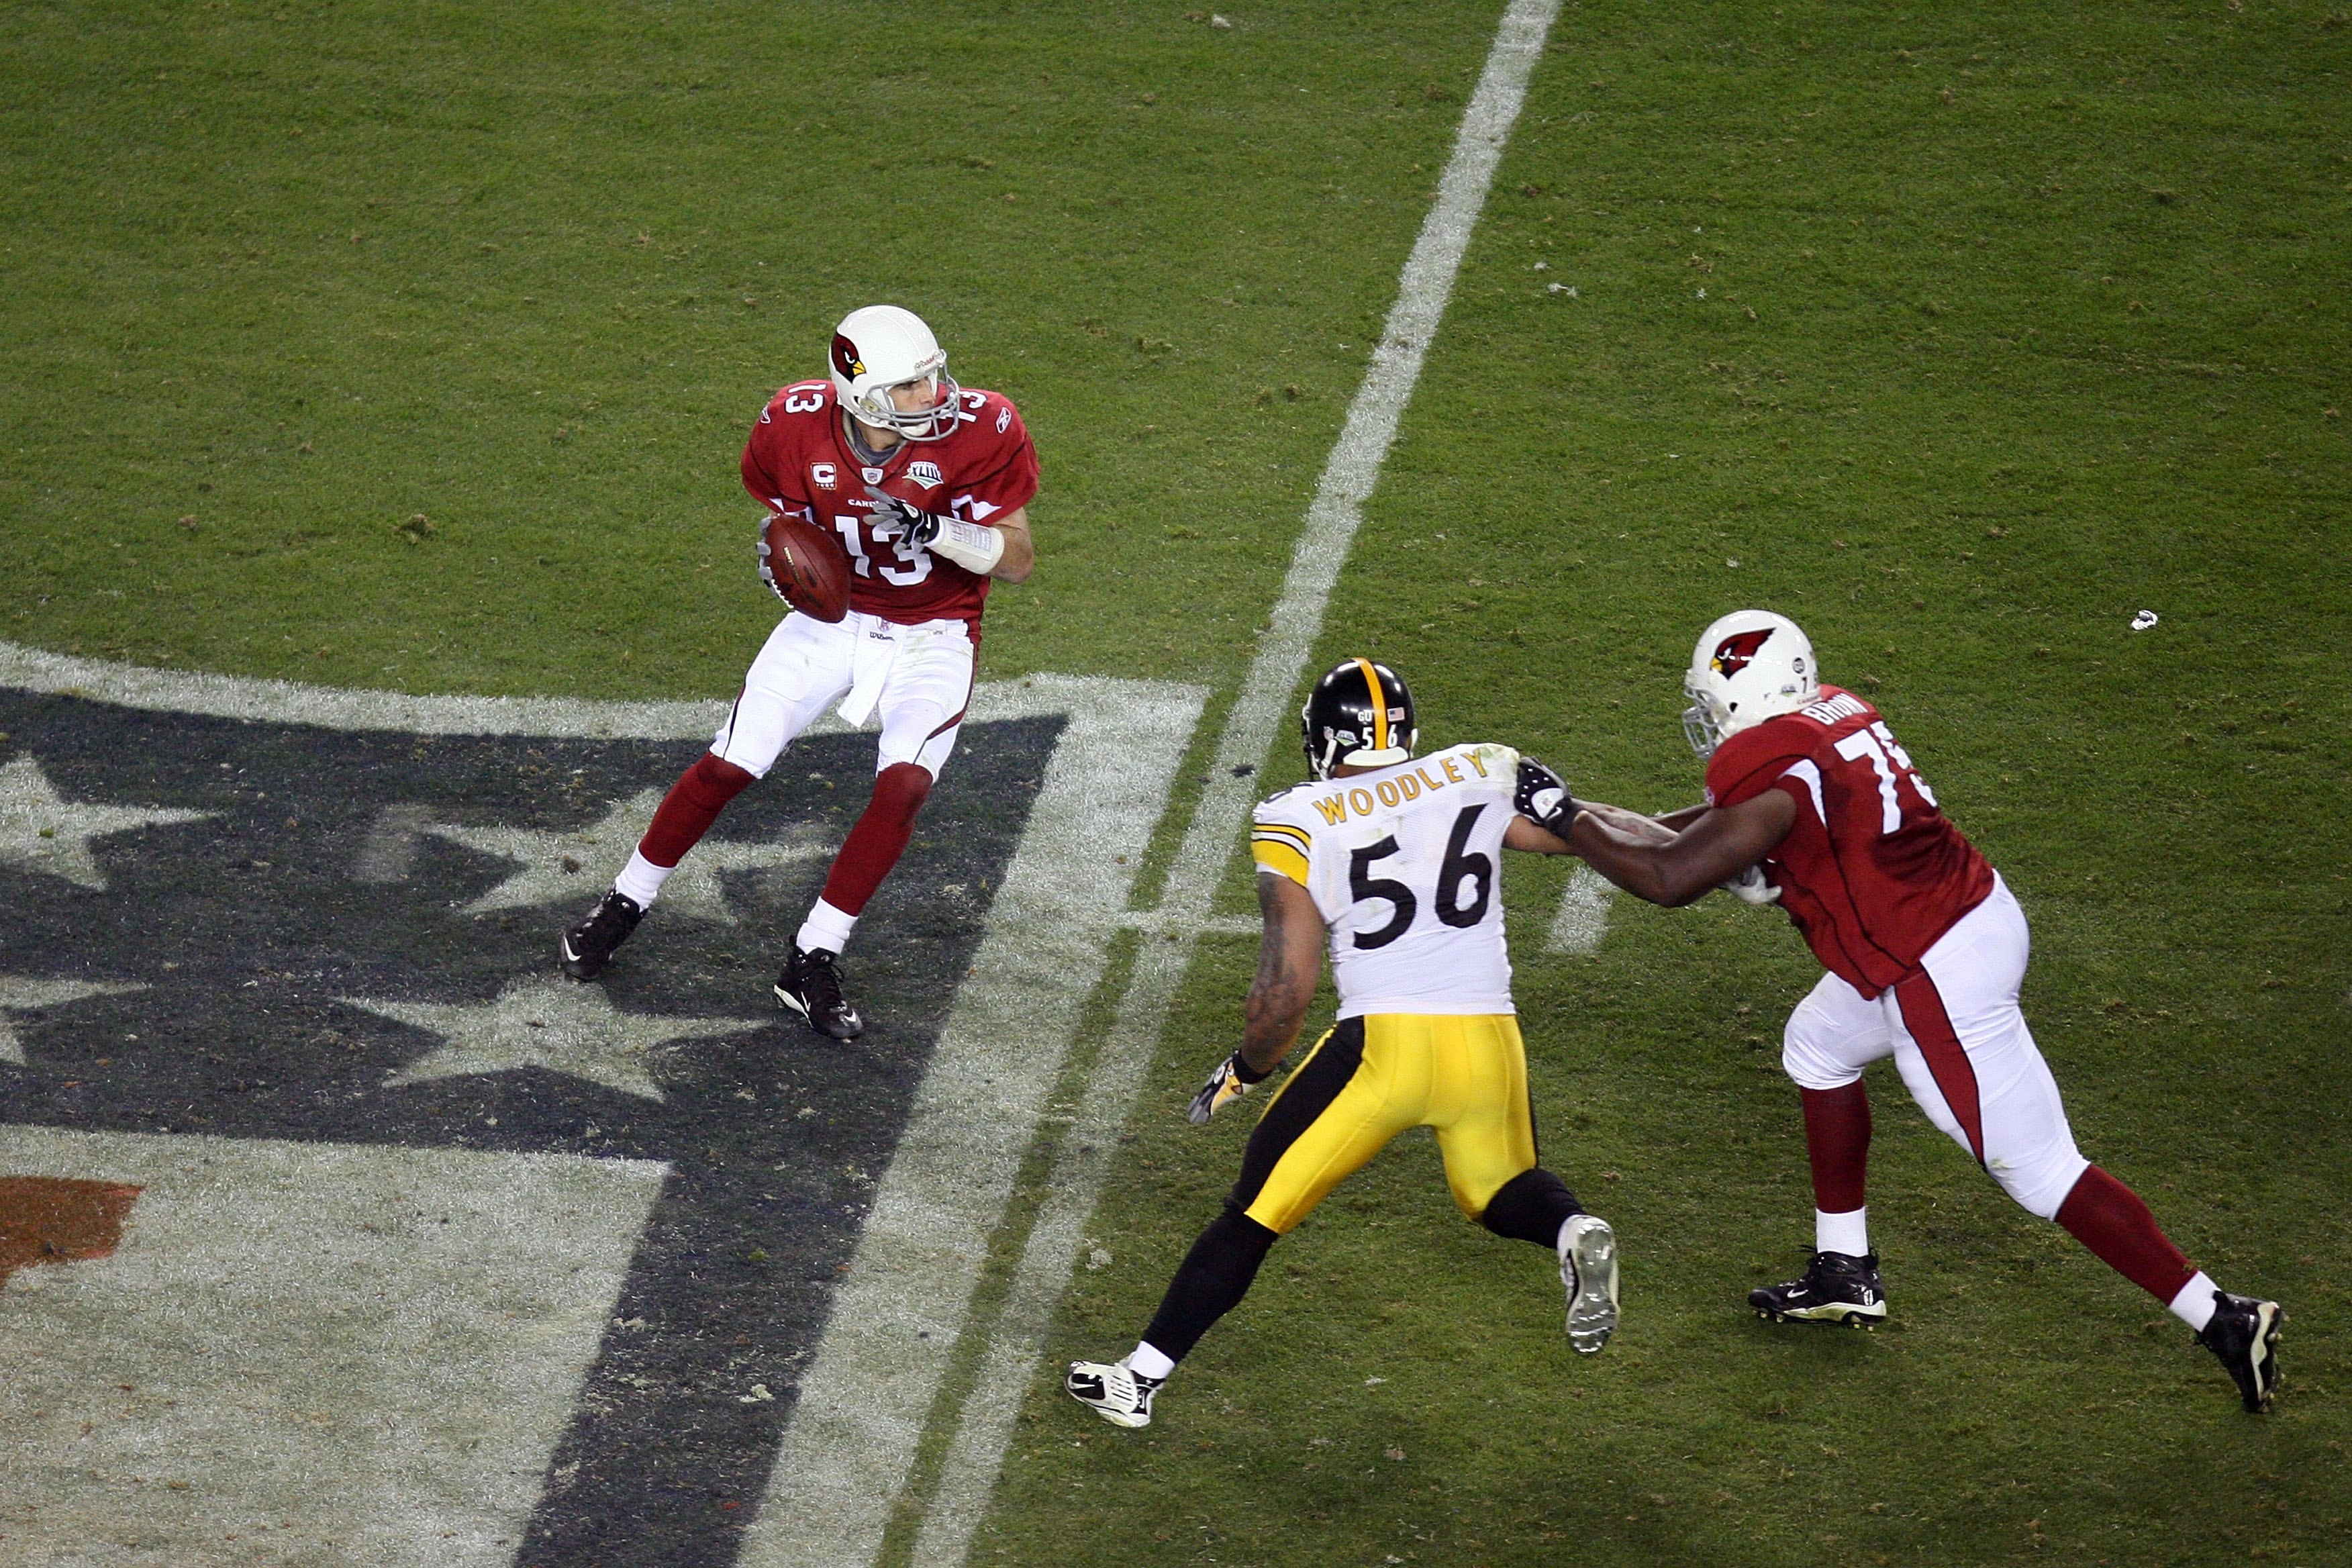 TAMPA, FL - FEBRUARY 01:  Kurt Warner #13 of the Arizona Cardinals looks to pass as Levi Brown #75 attempts to block LaMarr Woodley #56 of the Pittsburgh Steelers during Super Bowl XLIII on February 1, 2009 at Raymond James Stadium in Tampa, Florida. Stee